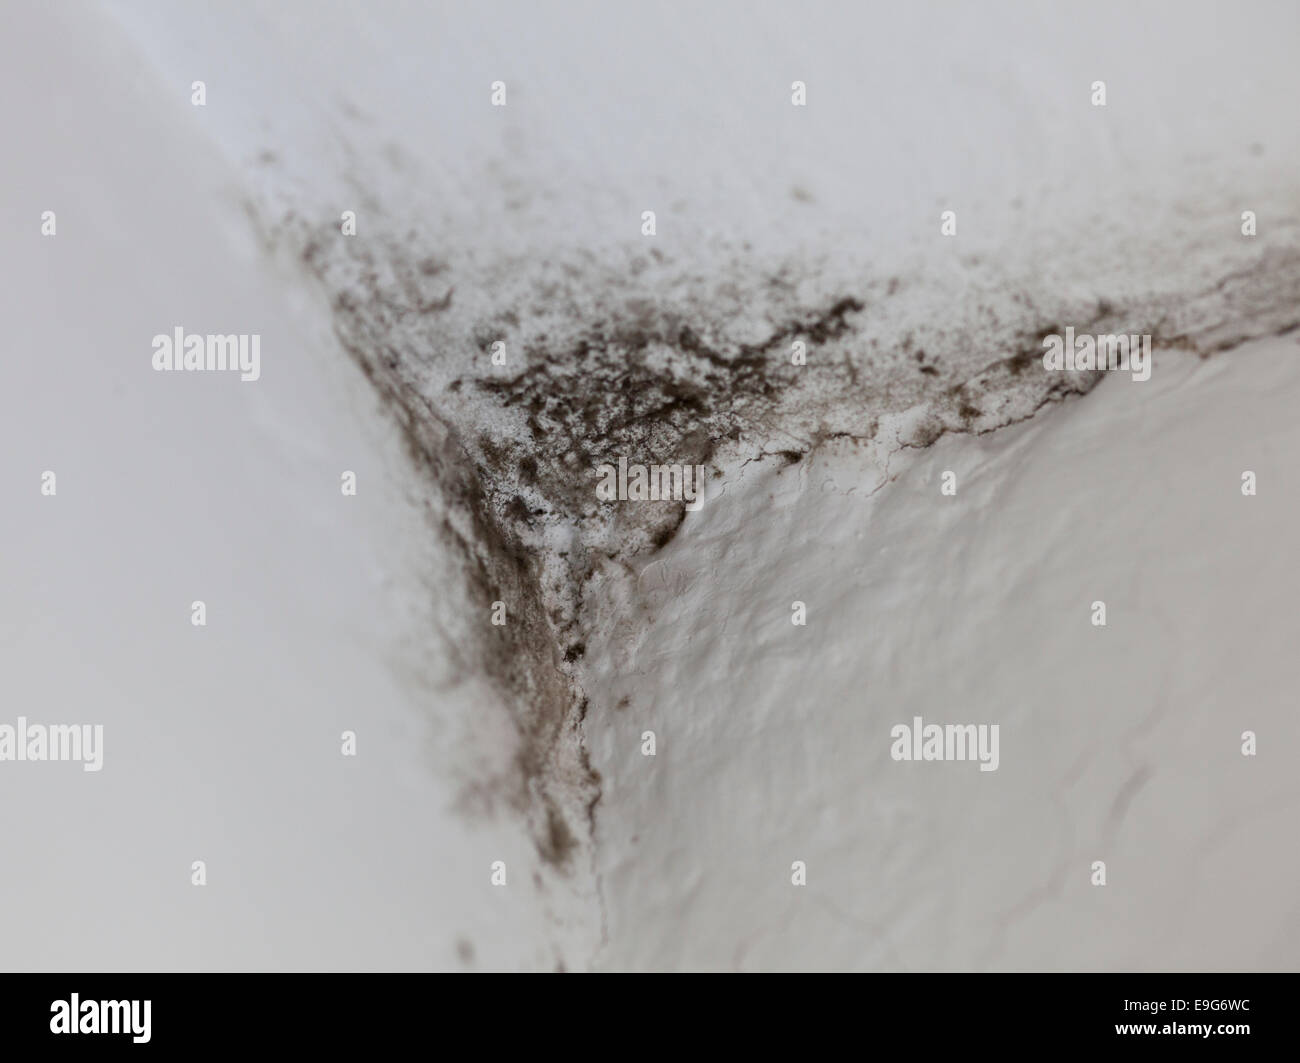 Mold in corner - Stock Image